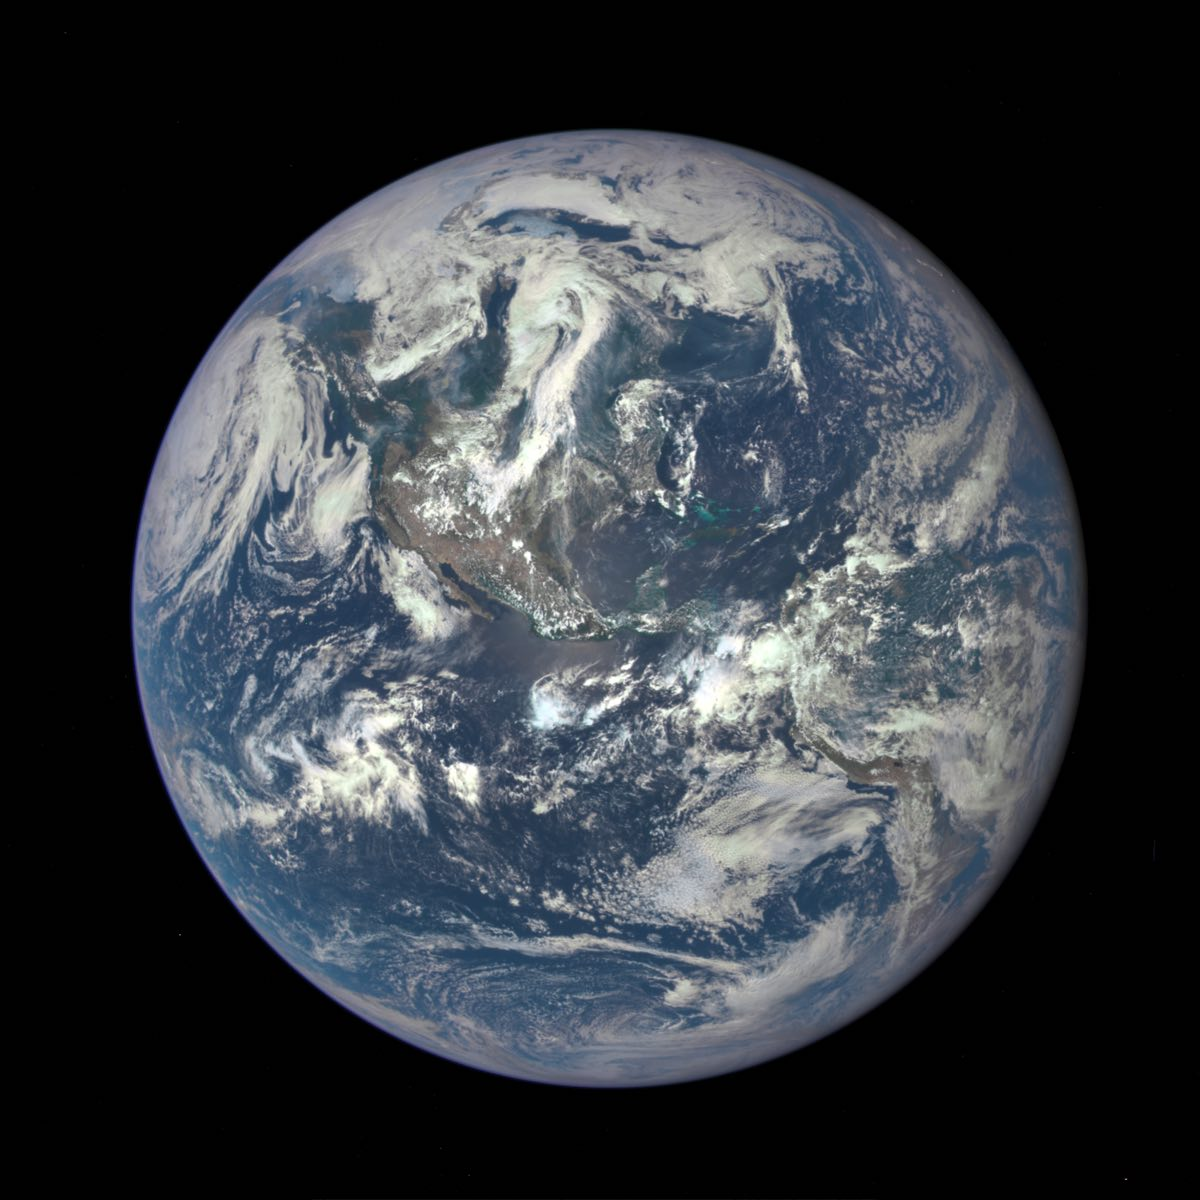 A new, EPIC view of planet Earth from NASA satellite ...